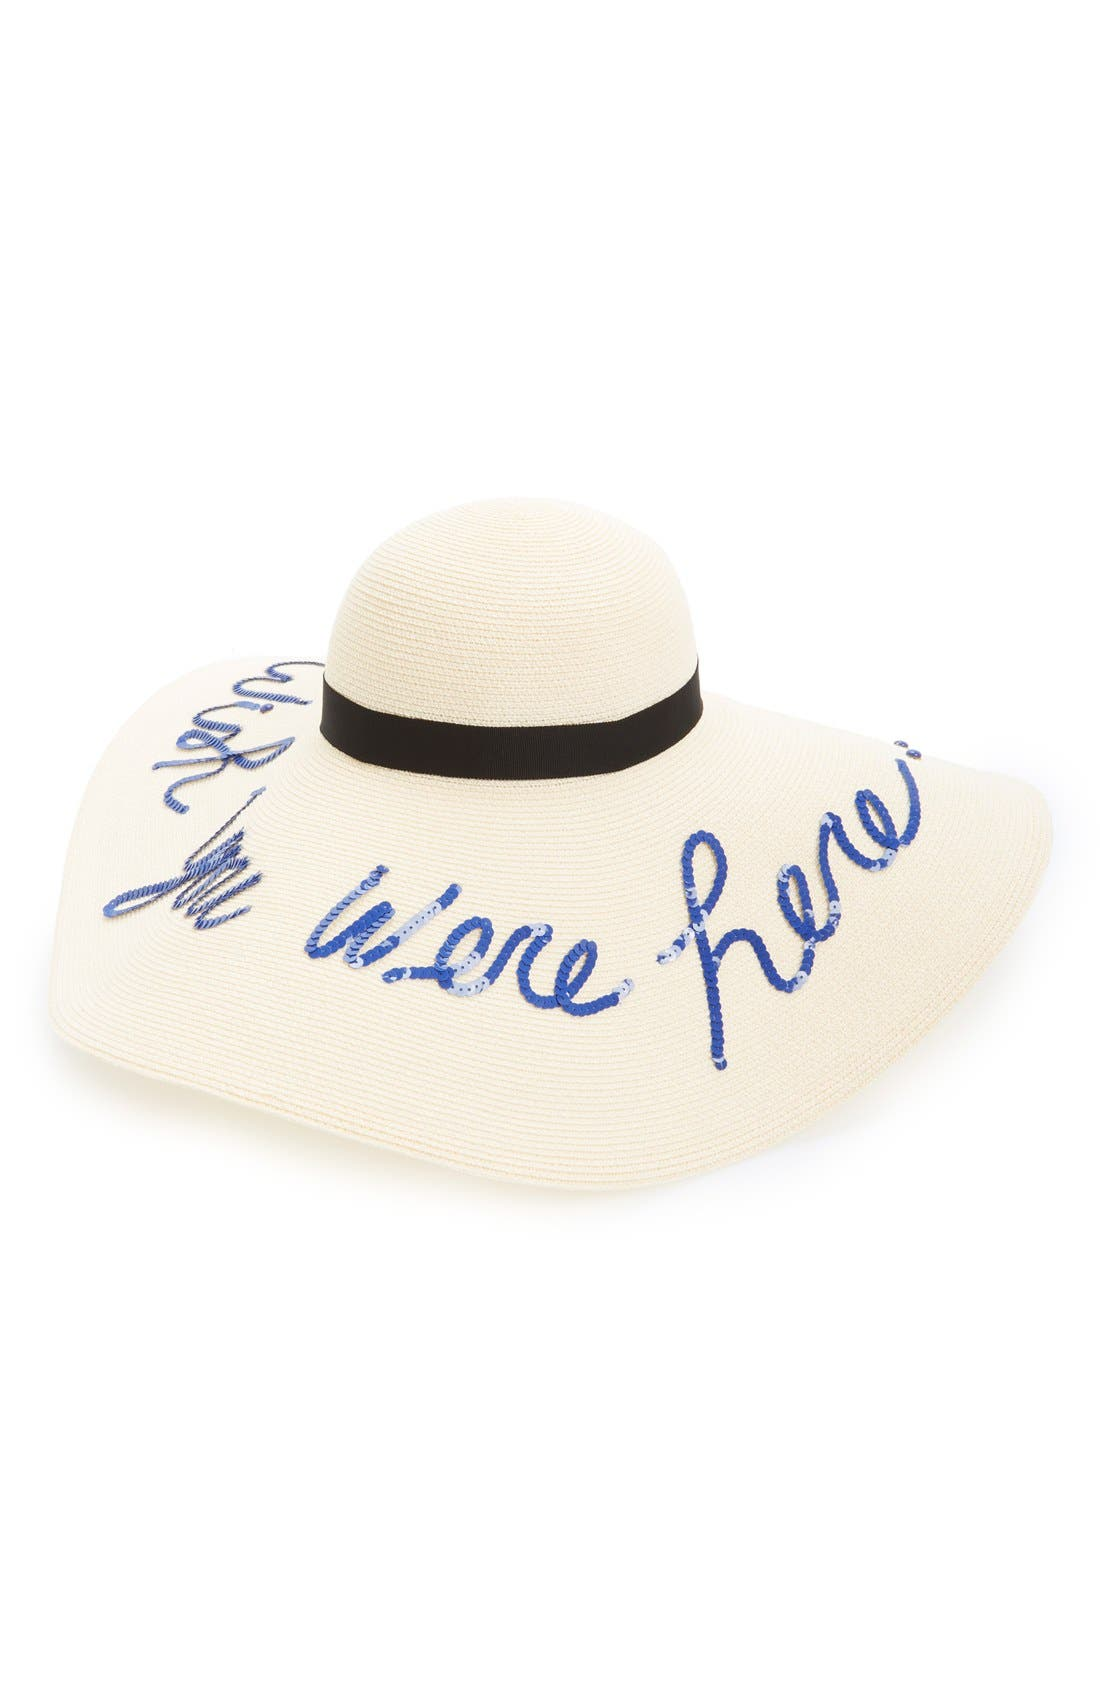 'Sunny - Wish You Were Here' Straw Sun Hat,                         Main,                         color, 250